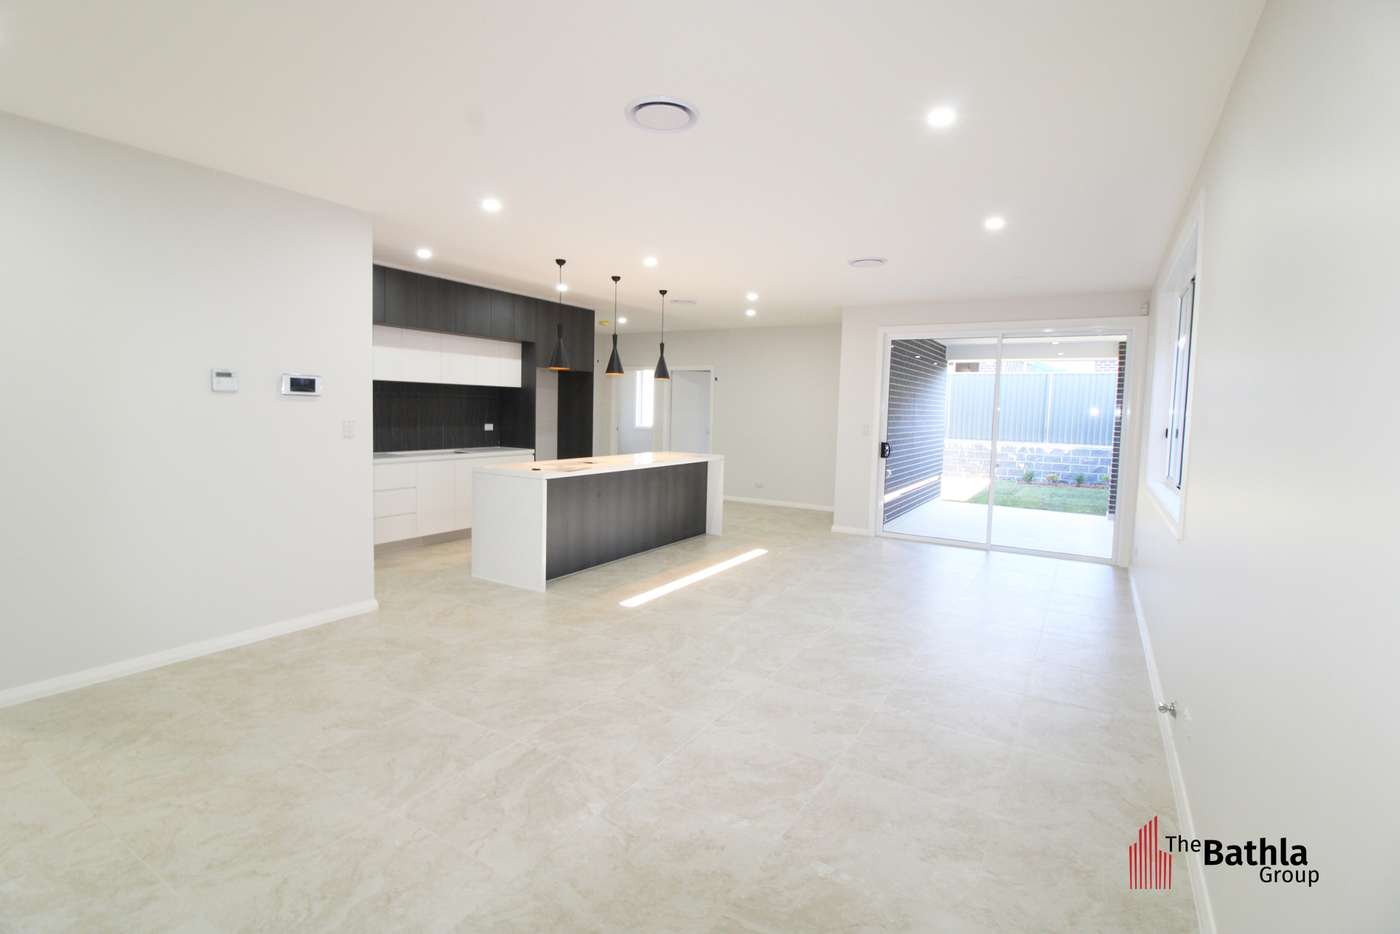 Fifth view of Homely house listing, 118 Boundary Road, Schofields NSW 2762